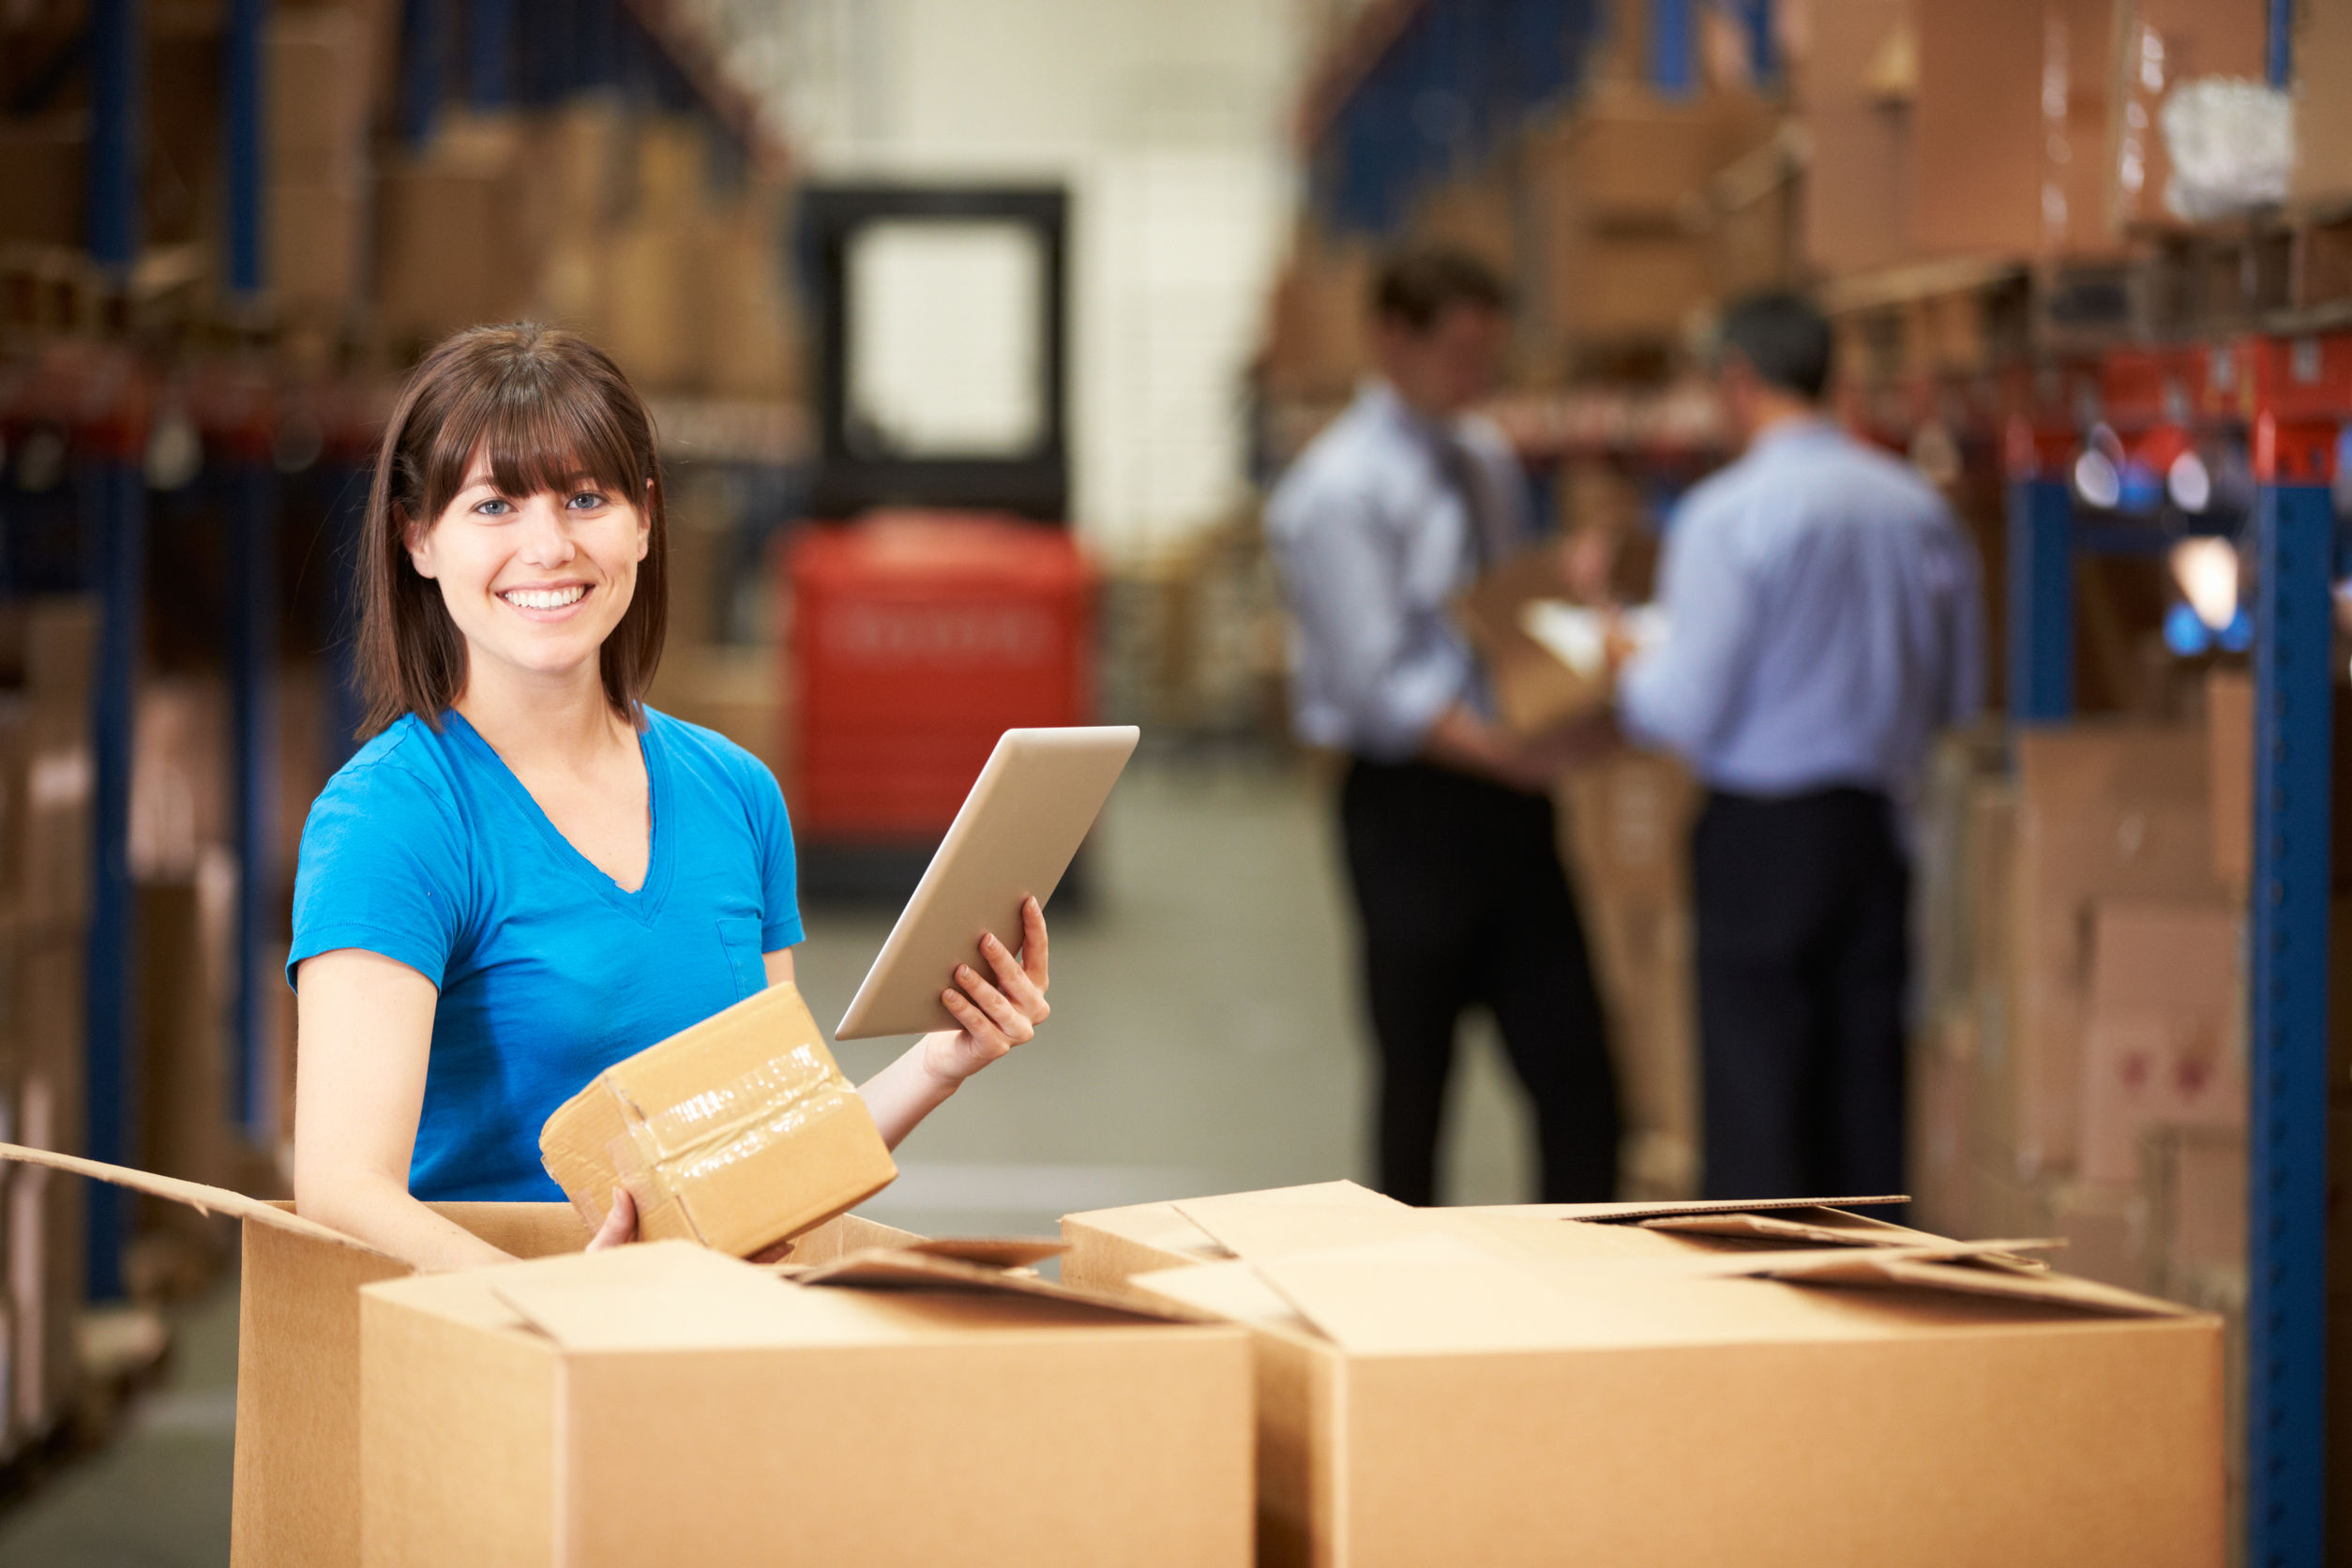 7 Inventory Management Essentials for Small and Mid-sized Businesses